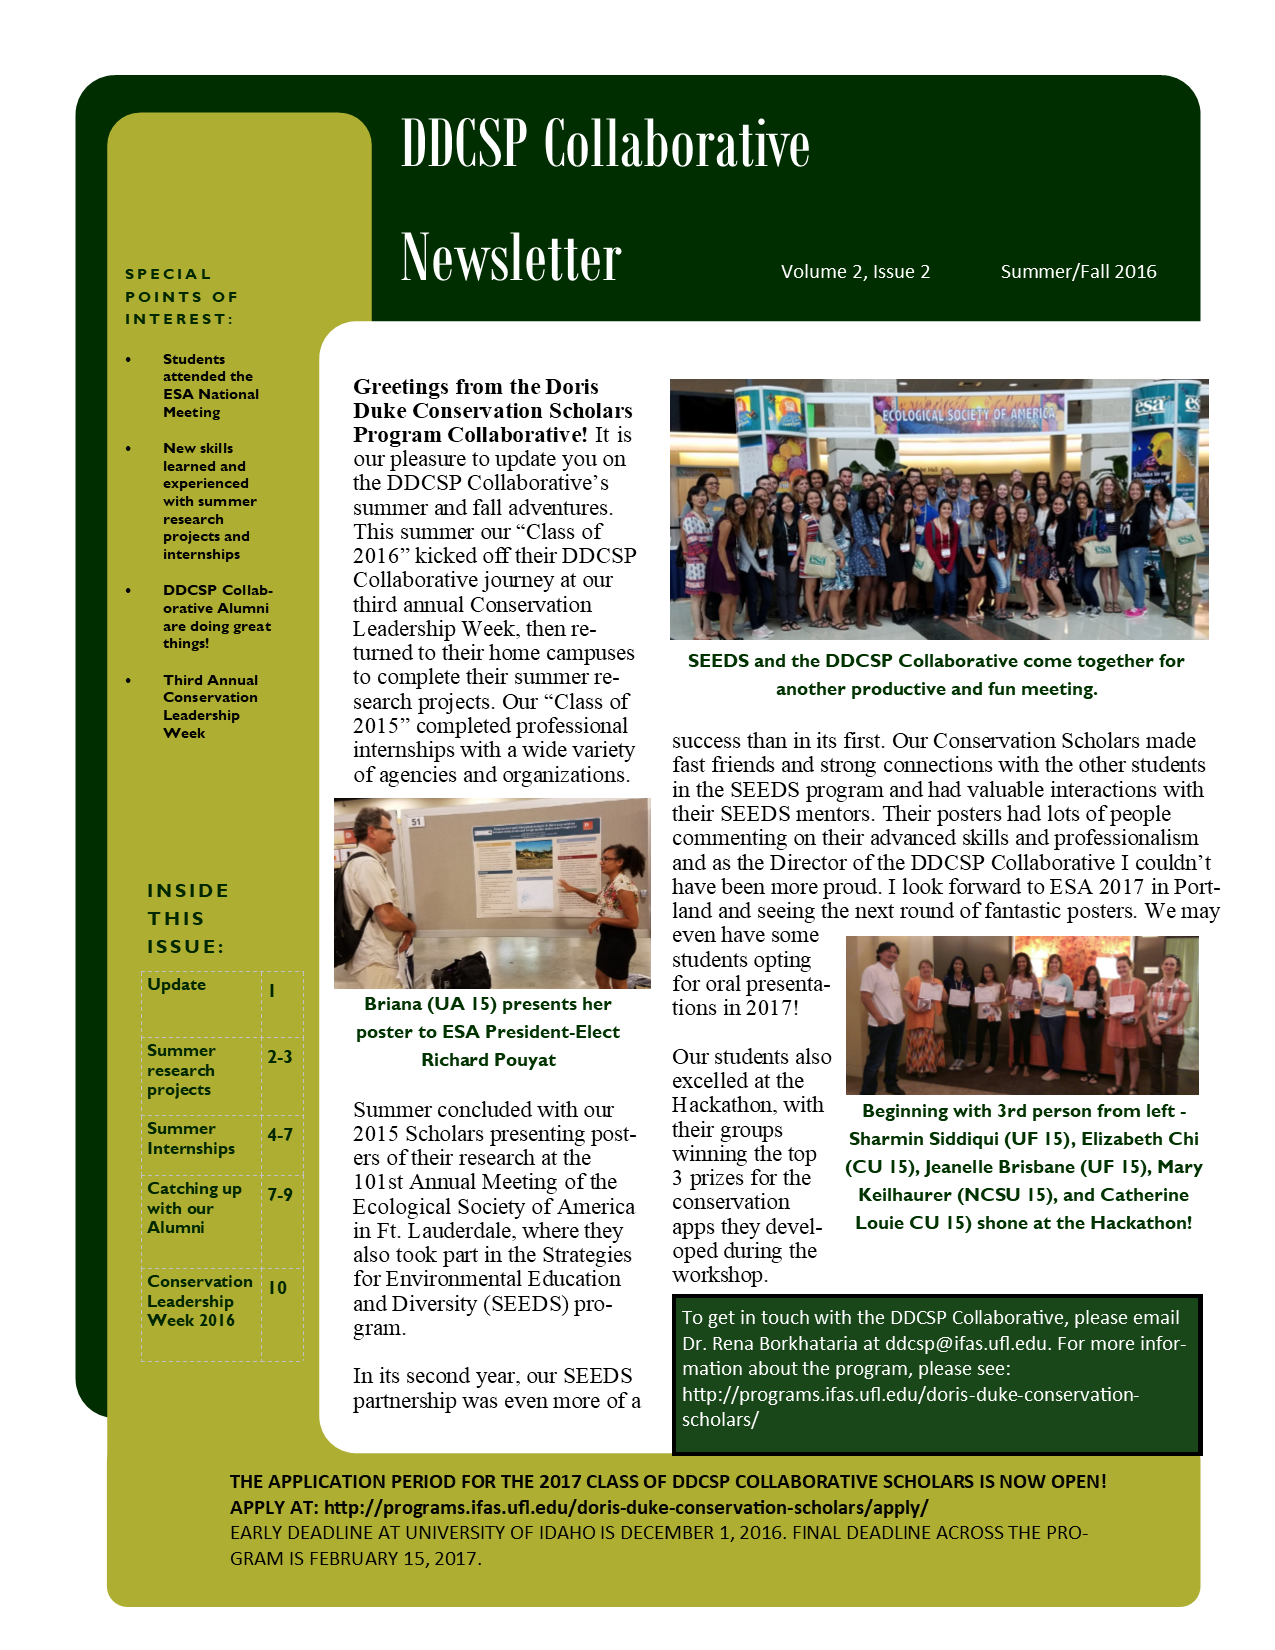 DDCSP Newsletter Summer&Fall 2016 Page1.png